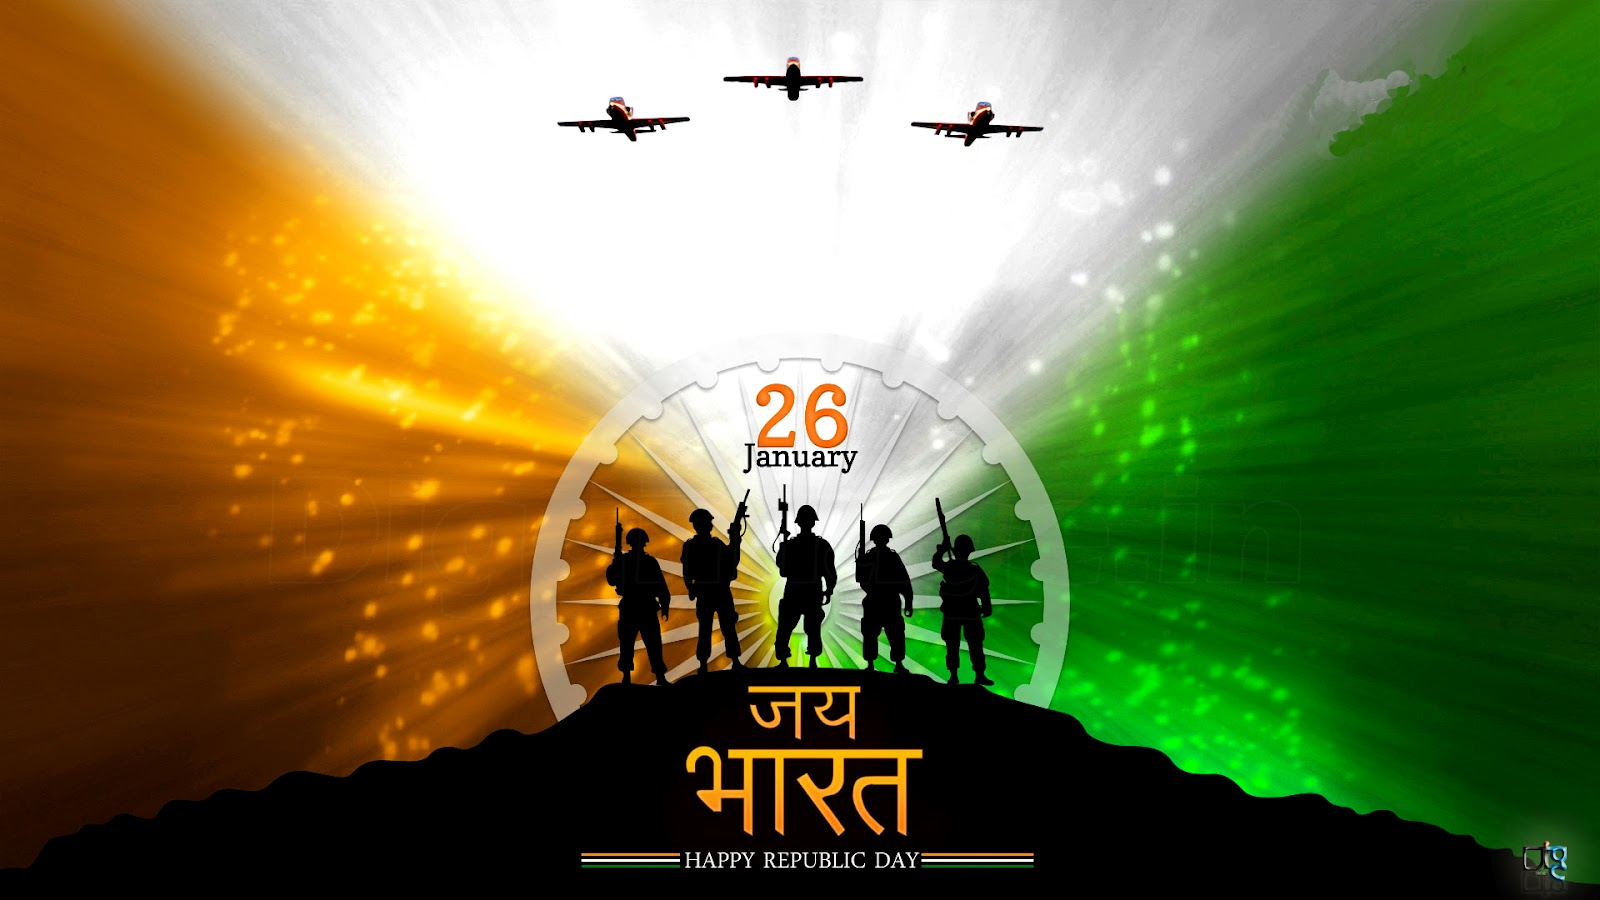 http://3.bp.blogspot.com/-EWGPhXJc8wA/UPFHH-QHcJI/AAAAAAAAA1s/1QF6WgIgs2E/s1600/January-26-th-happy-republic-day-2013-jai-bharat-indian-greetings.jpg